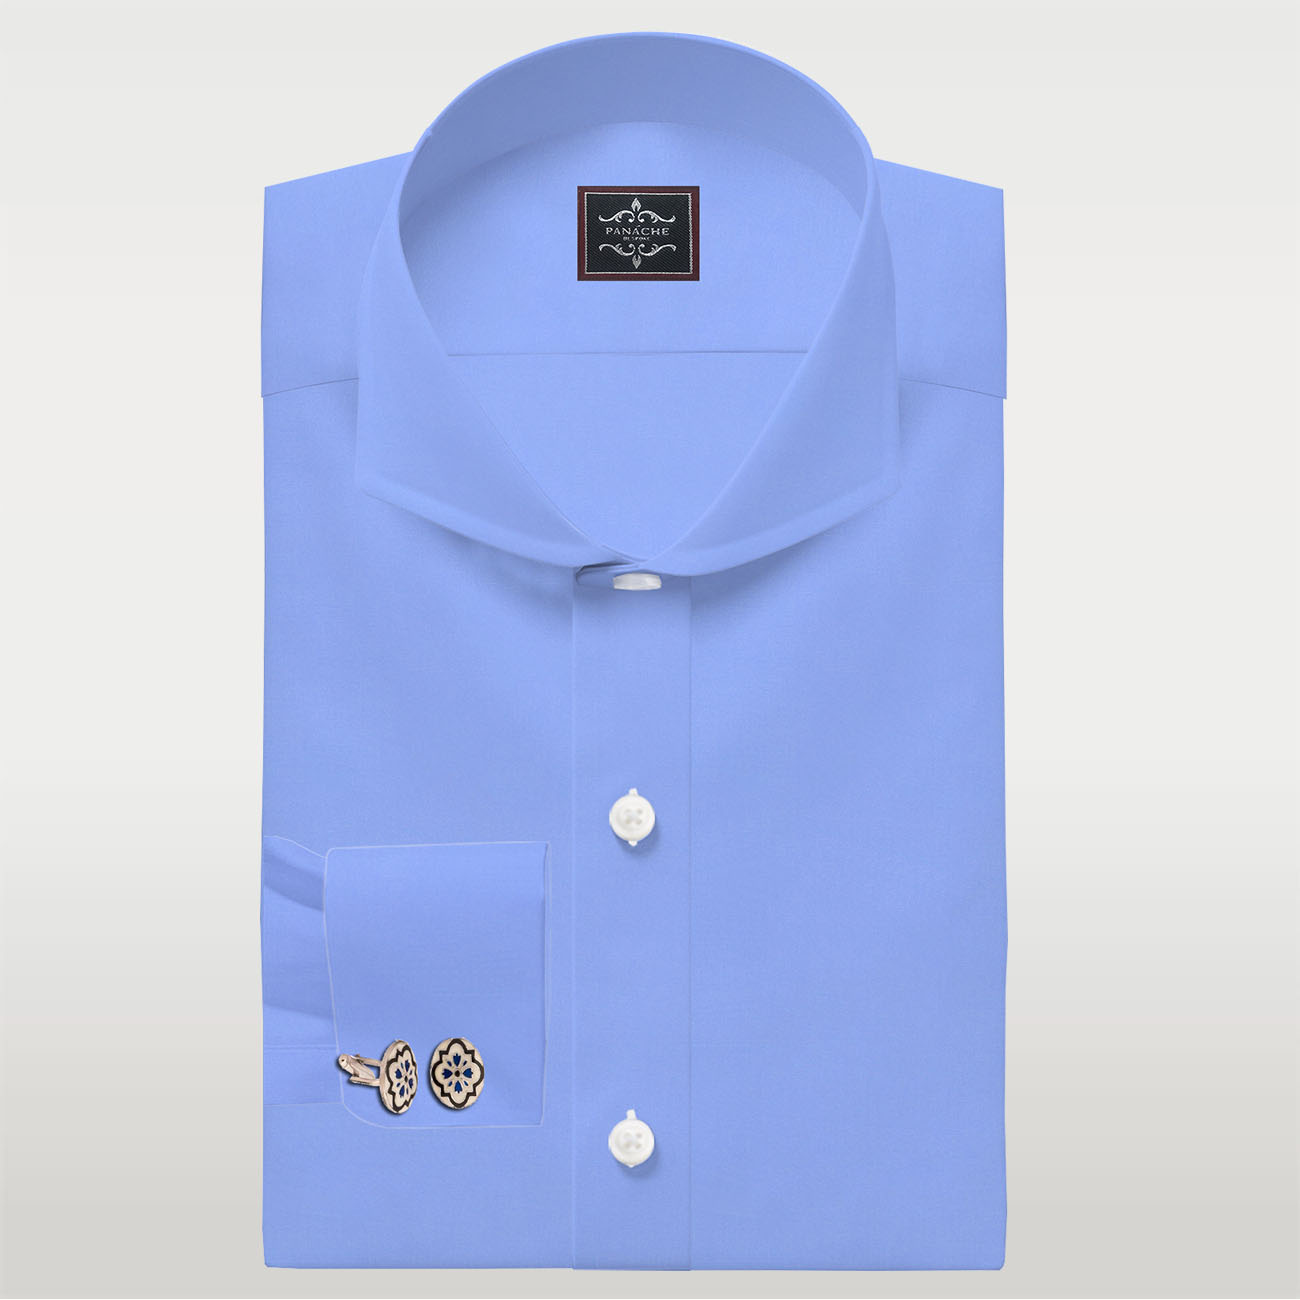 Luxury light Blue Shirt